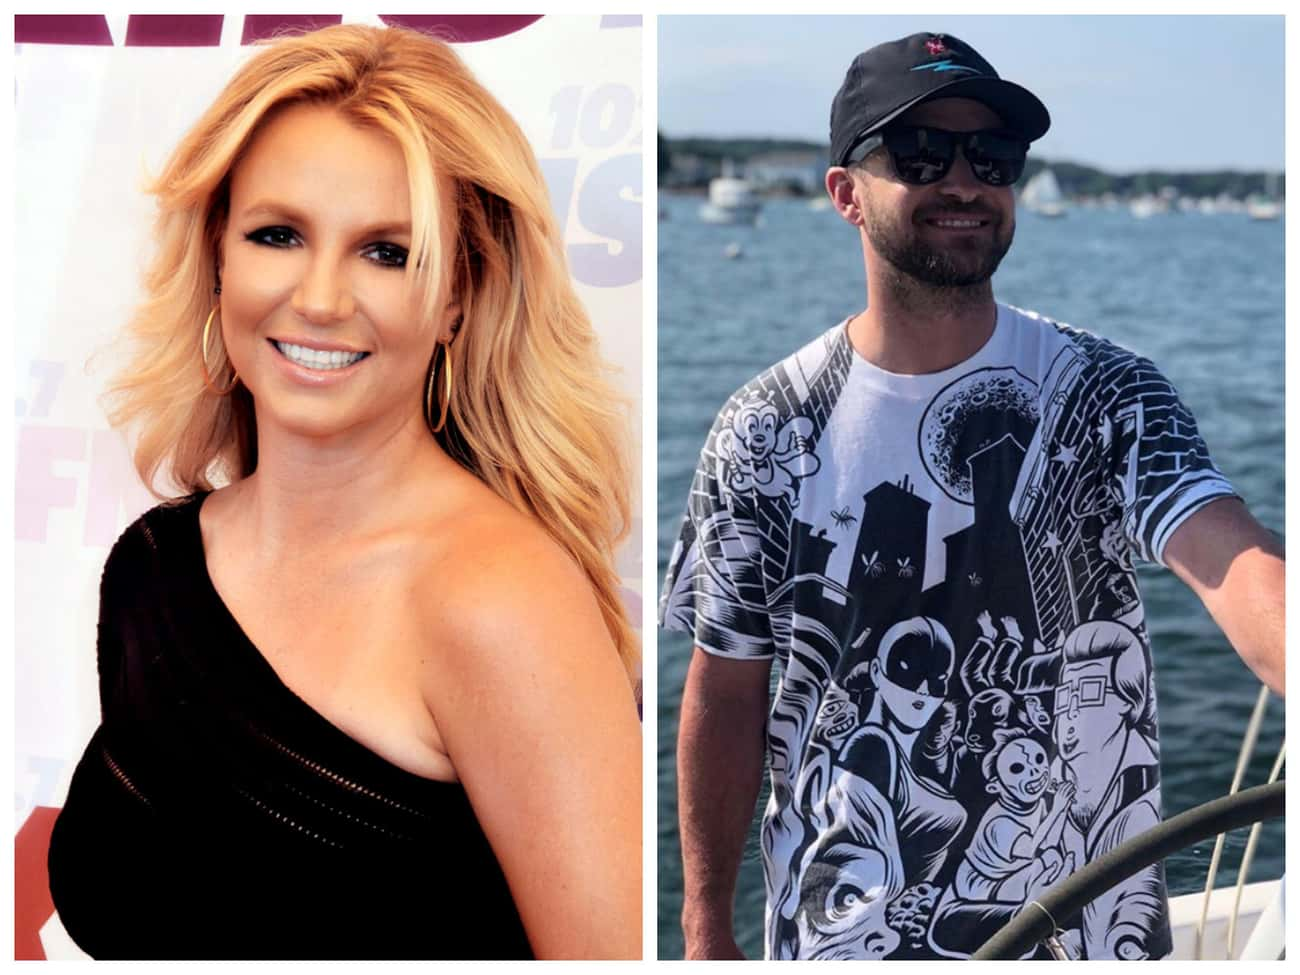 Britney Spears And Justin Timb is listed (or ranked) 1 on the list Celebrities Who Broke Up But Still Remained Close With Their Exes